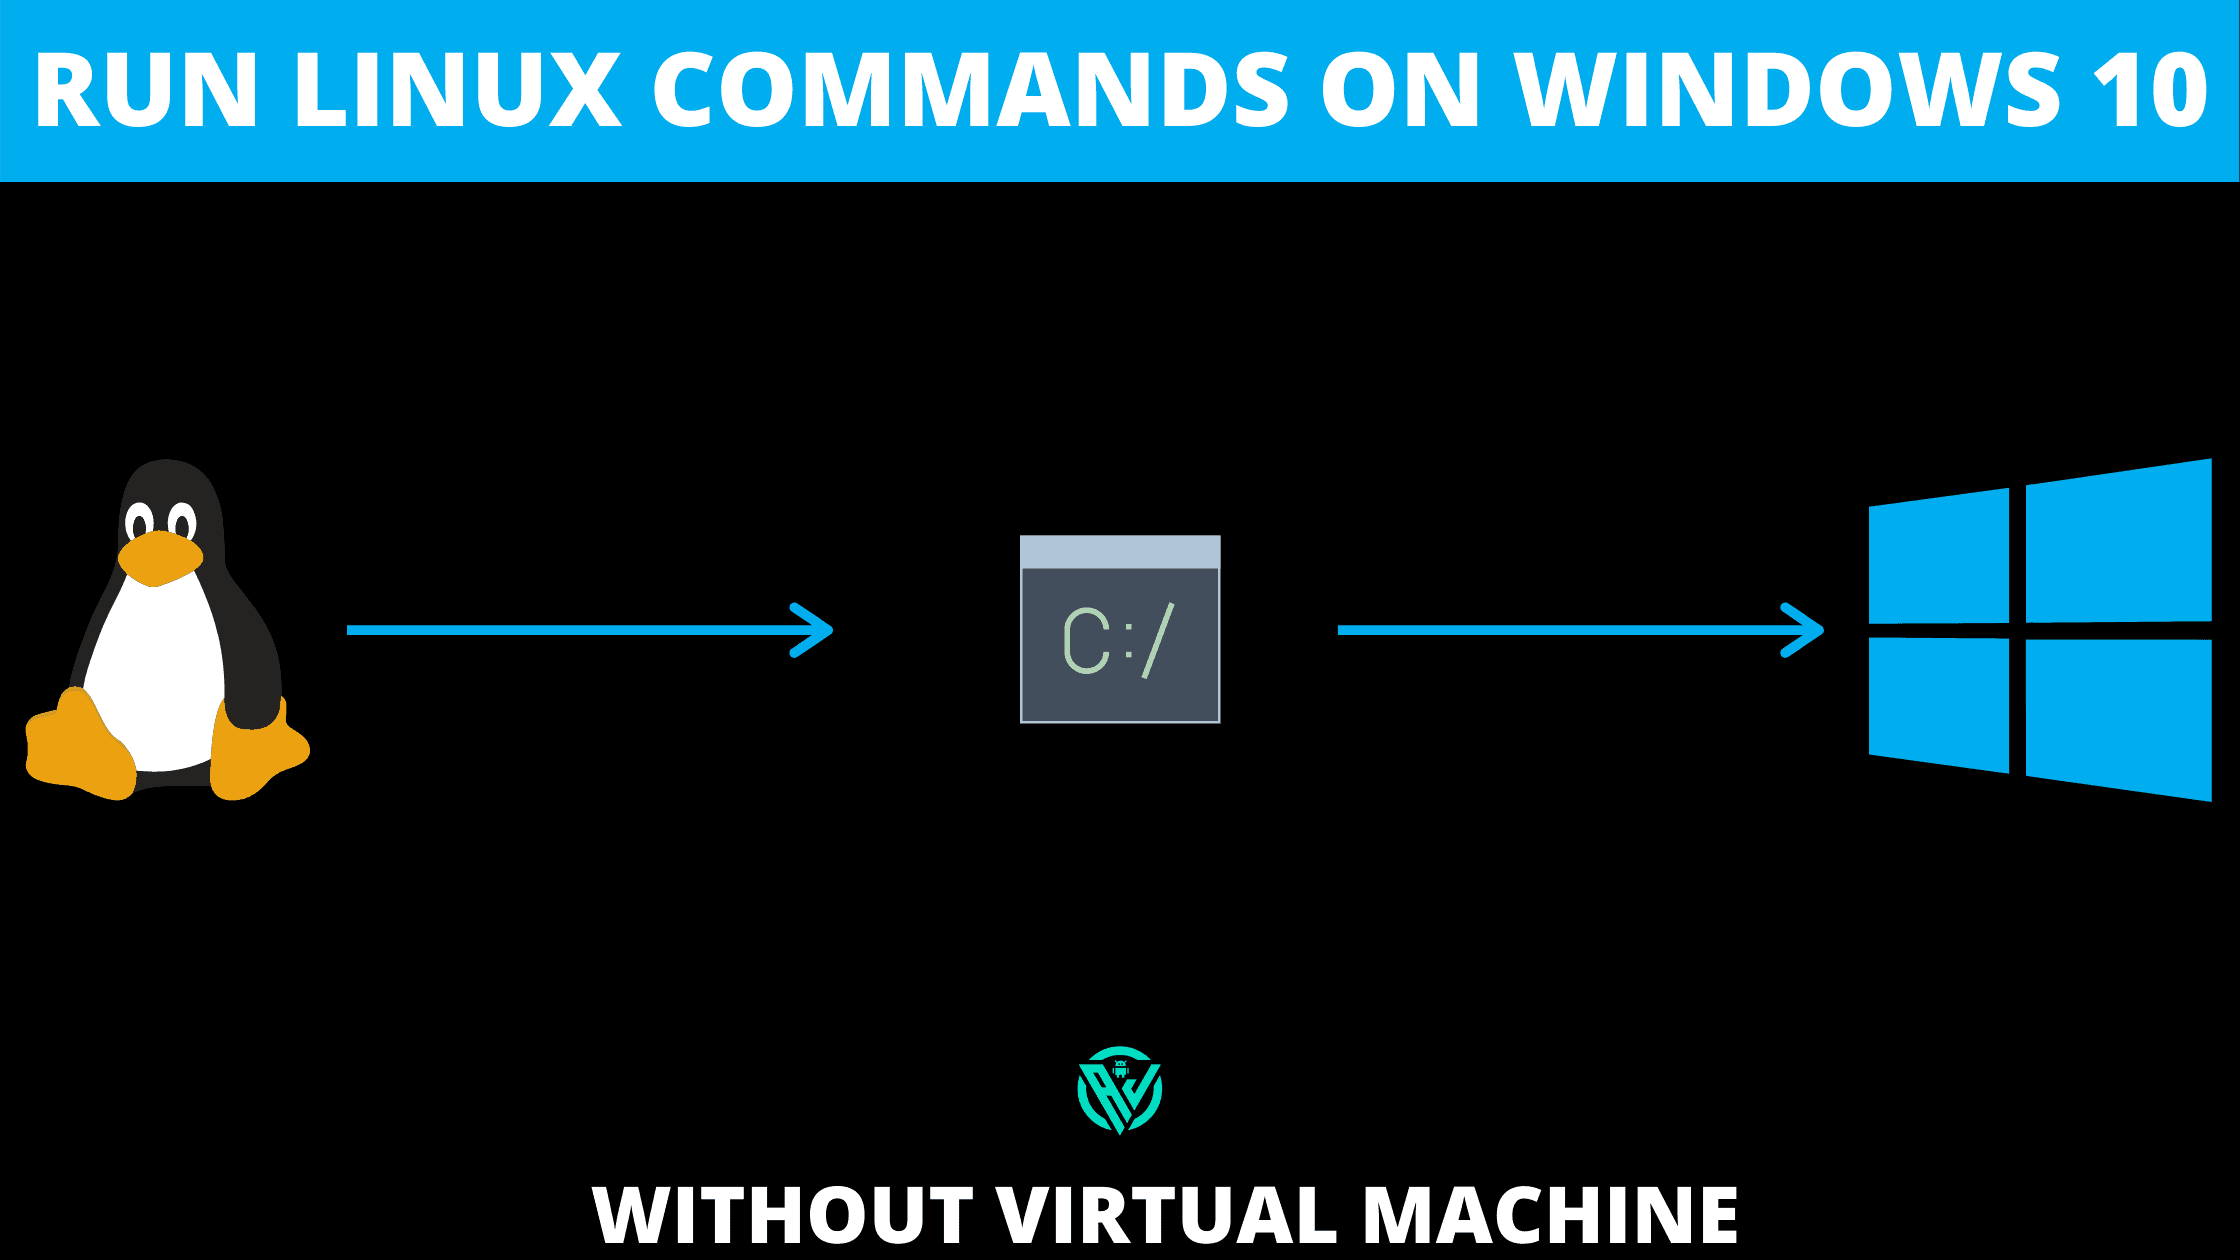 Run Linux Commands on Windows 10 without Virtual Machine